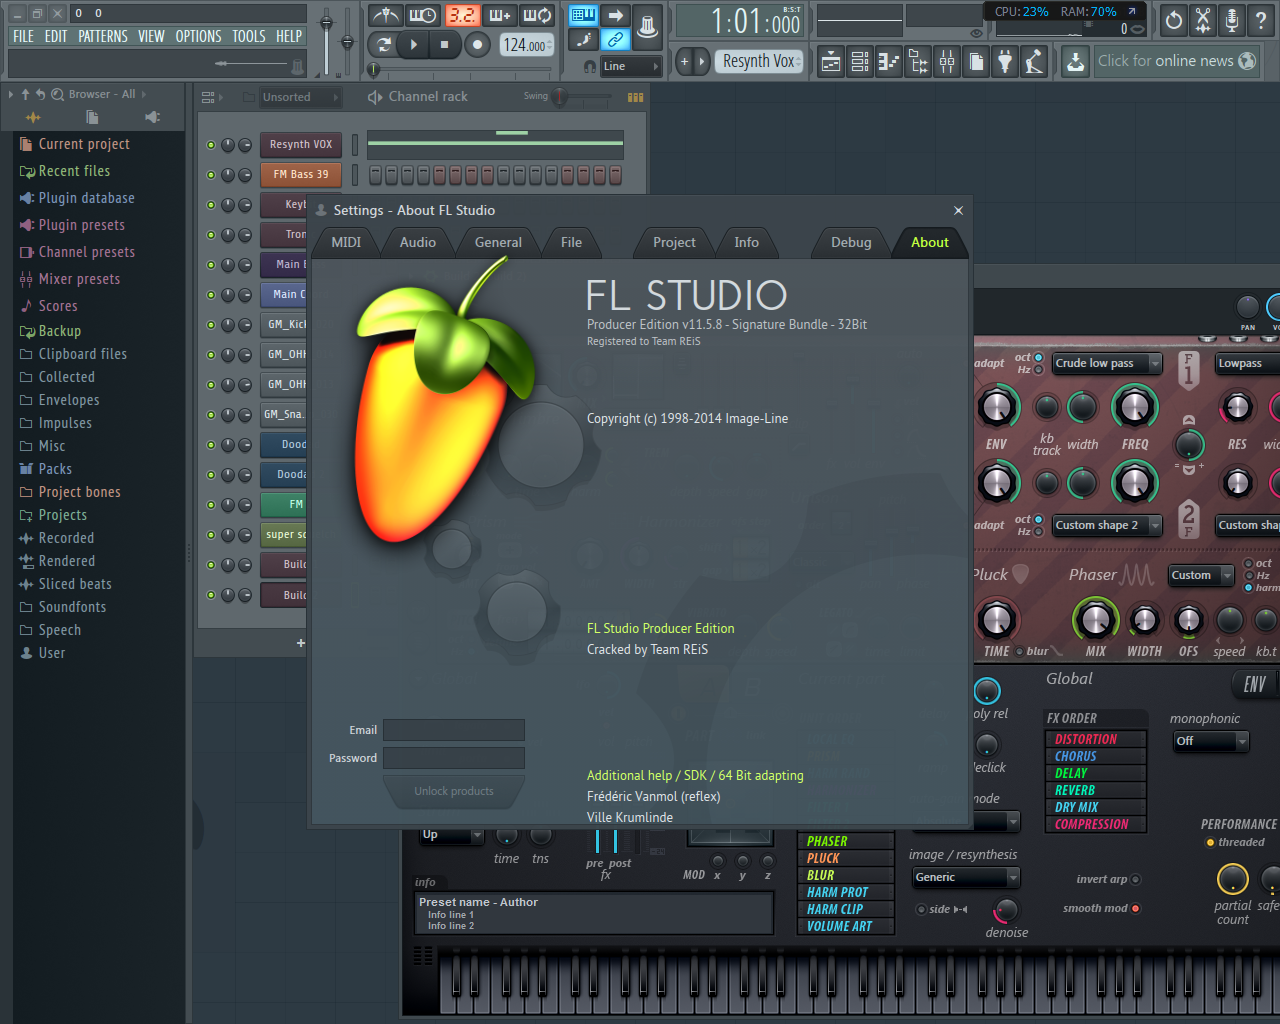 Fl studio xxl 63.pre patched pre cracked 2017 100new